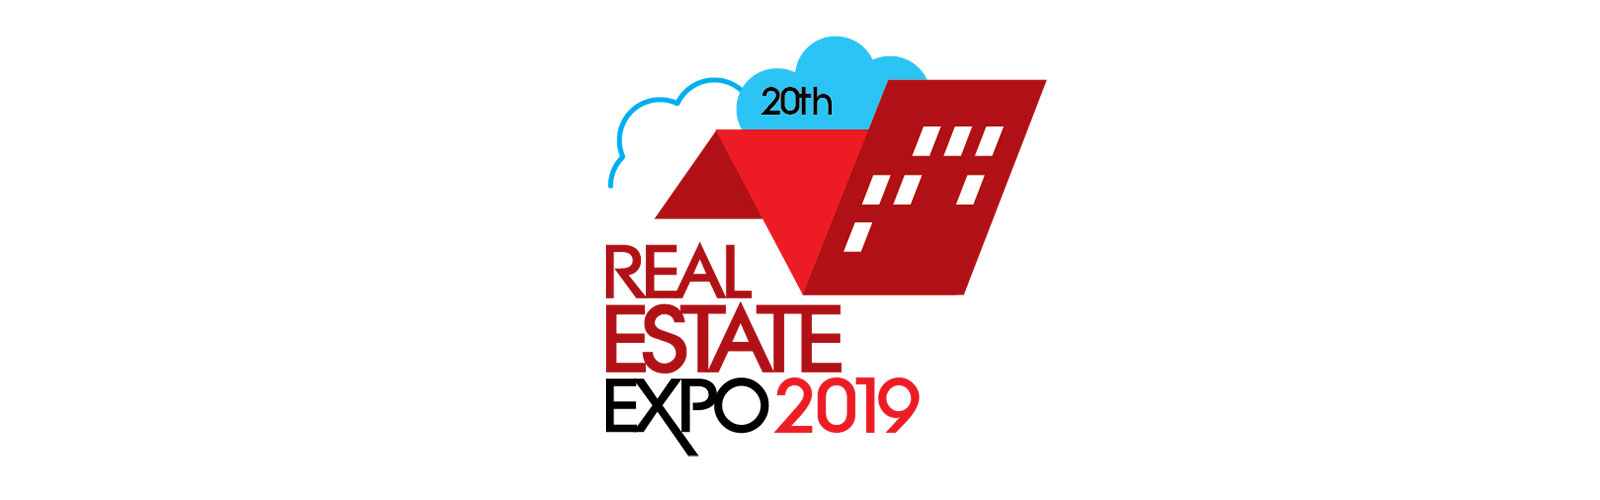 20th Real Estate Expo 2019